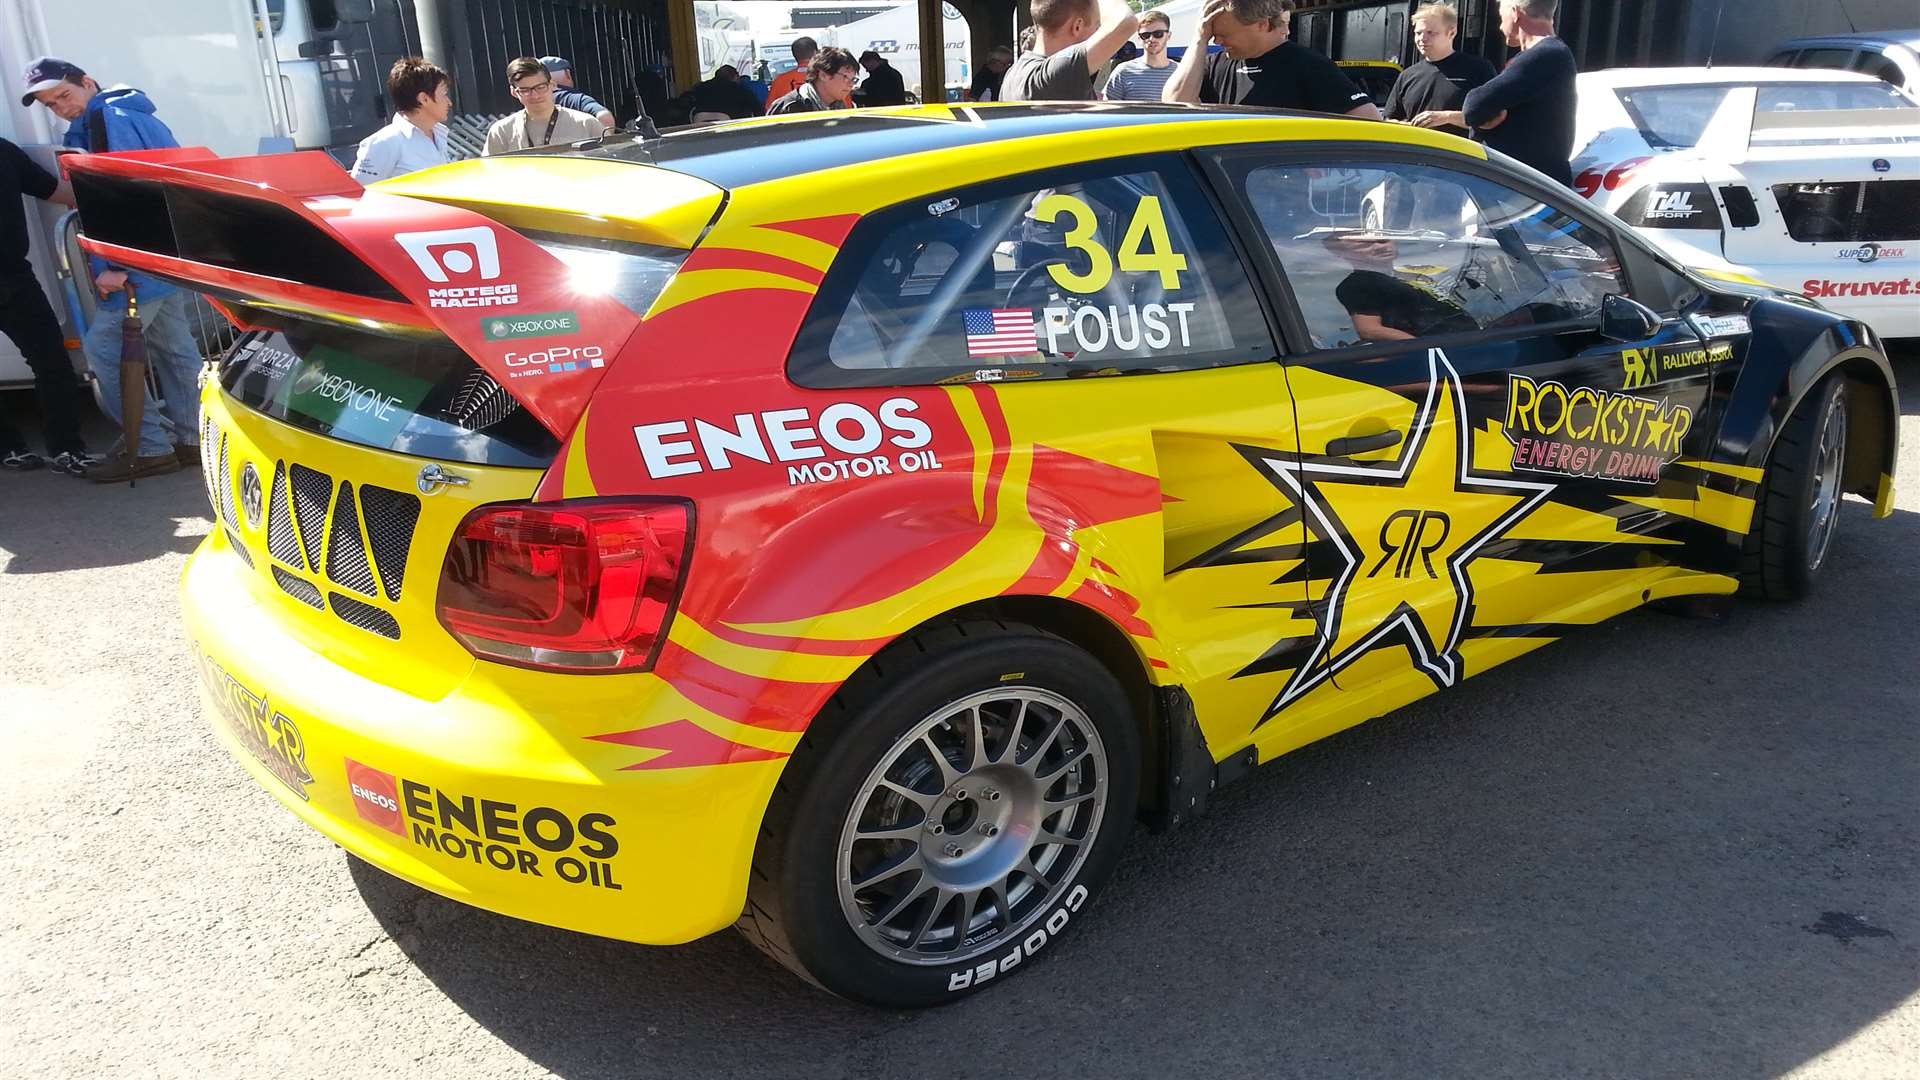 Tanner Foust's new VW Polo made an appearance in the afternoon